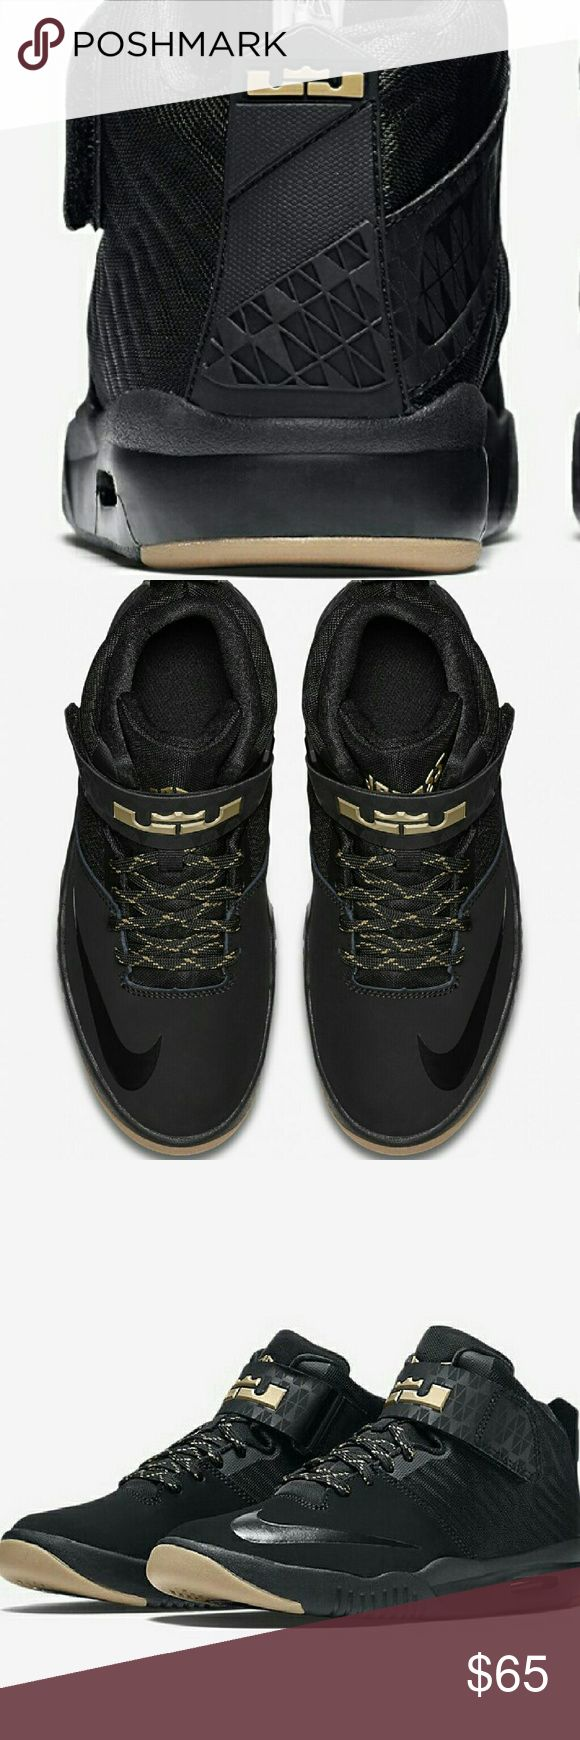 new styles 2a129 b19a2 Best 25+ Lebrons for kids ideas on Pinterest   Nike shoes for kids, Lebron  james kids and Kids adidas trainers